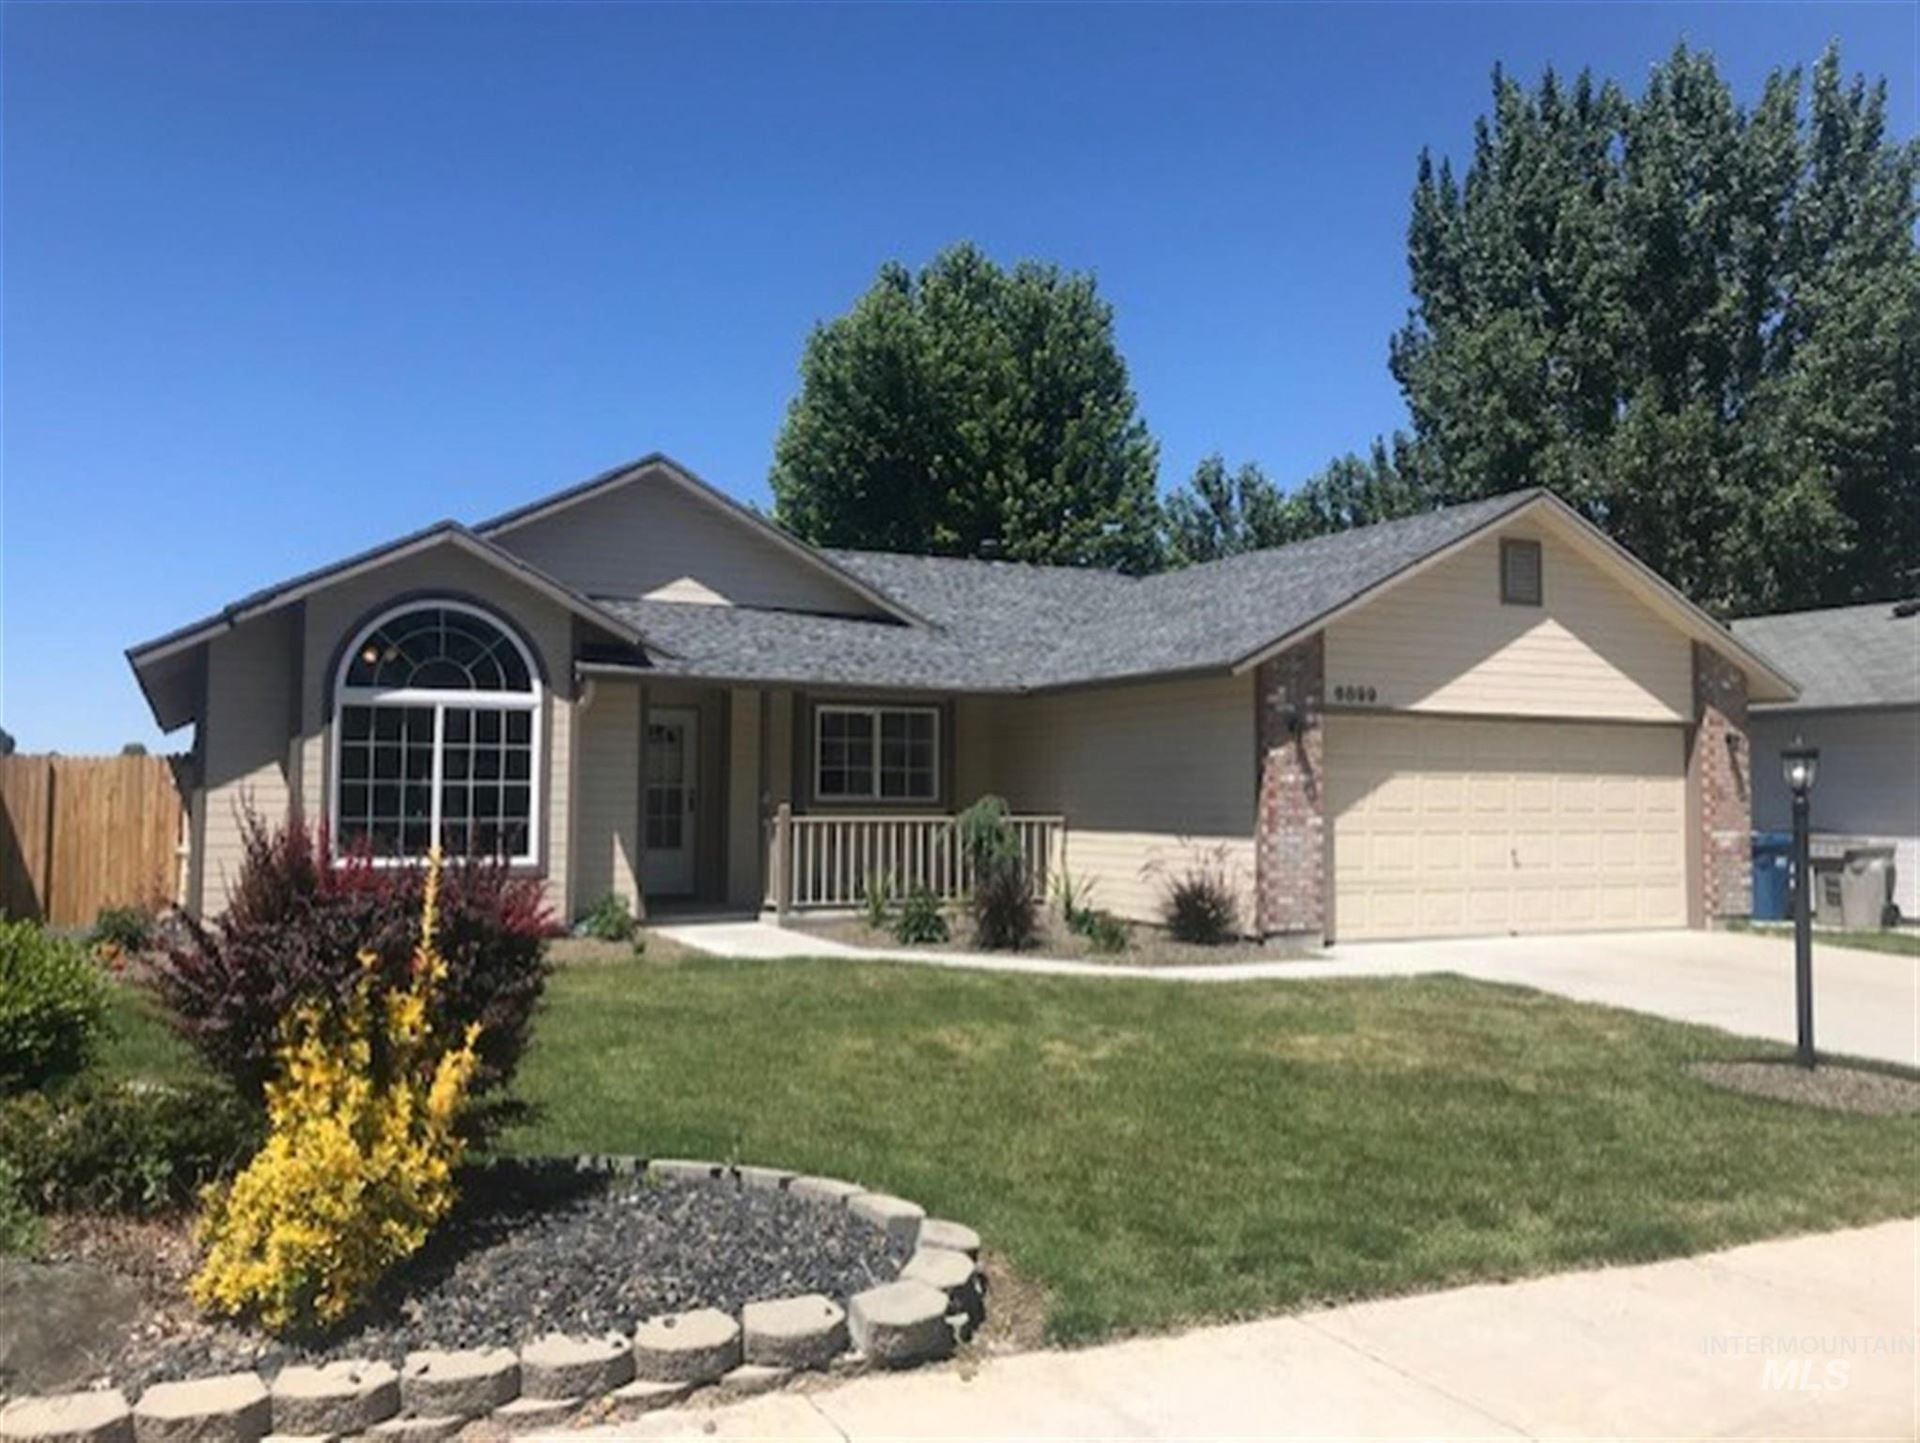 6899 Casa Real Place, Boise, ID 83714 - MLS#: 98772960